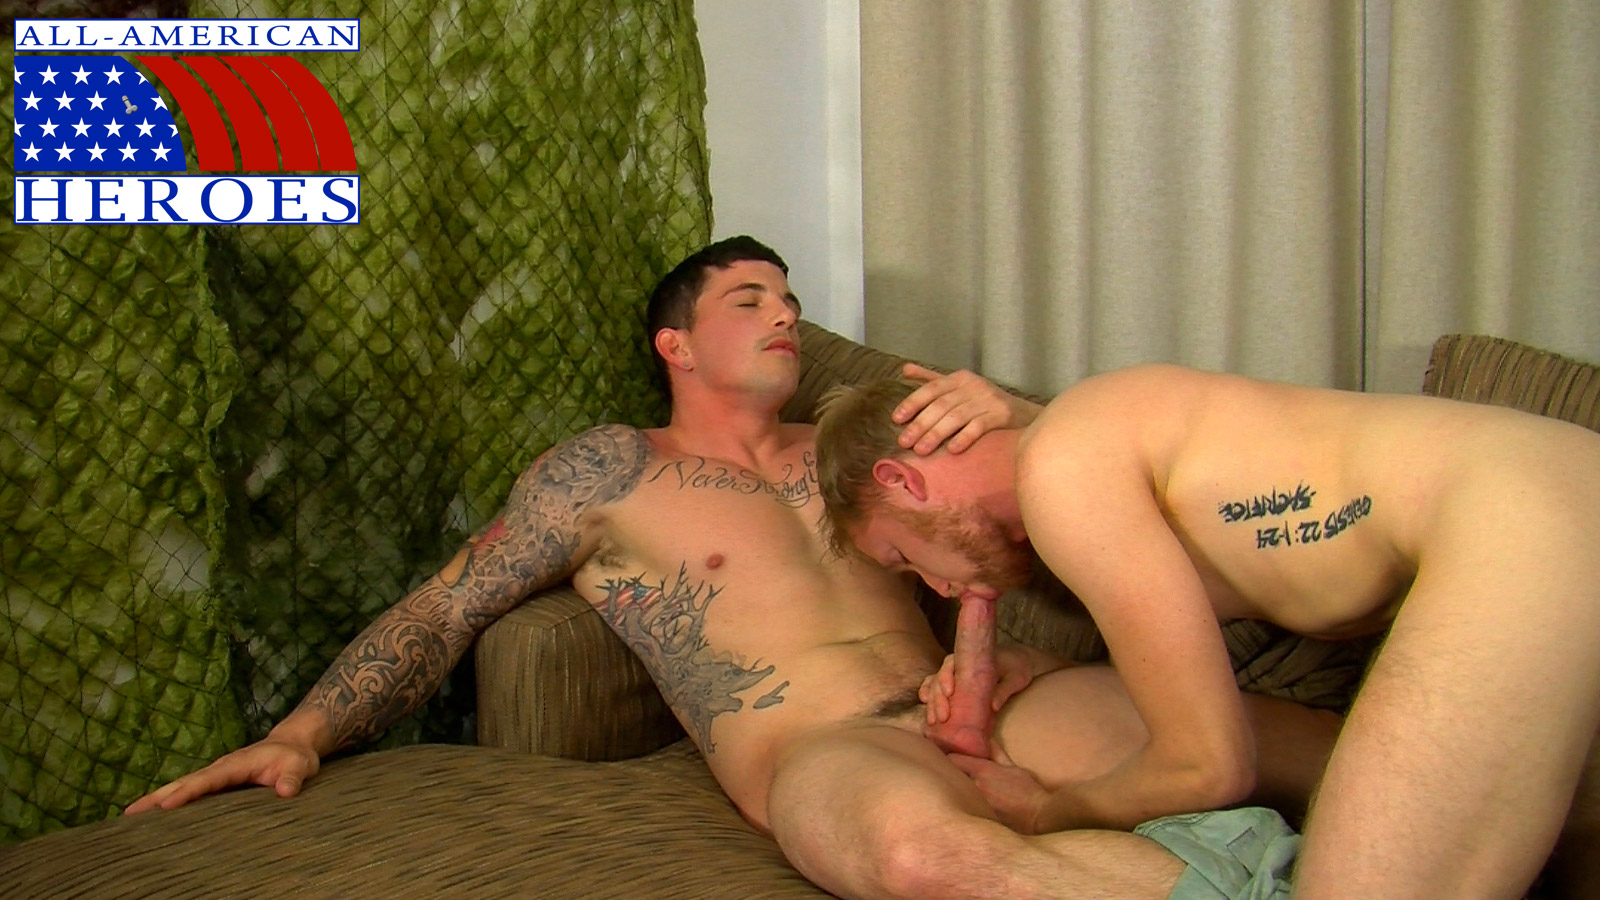 Giving Straight Marine A Bj